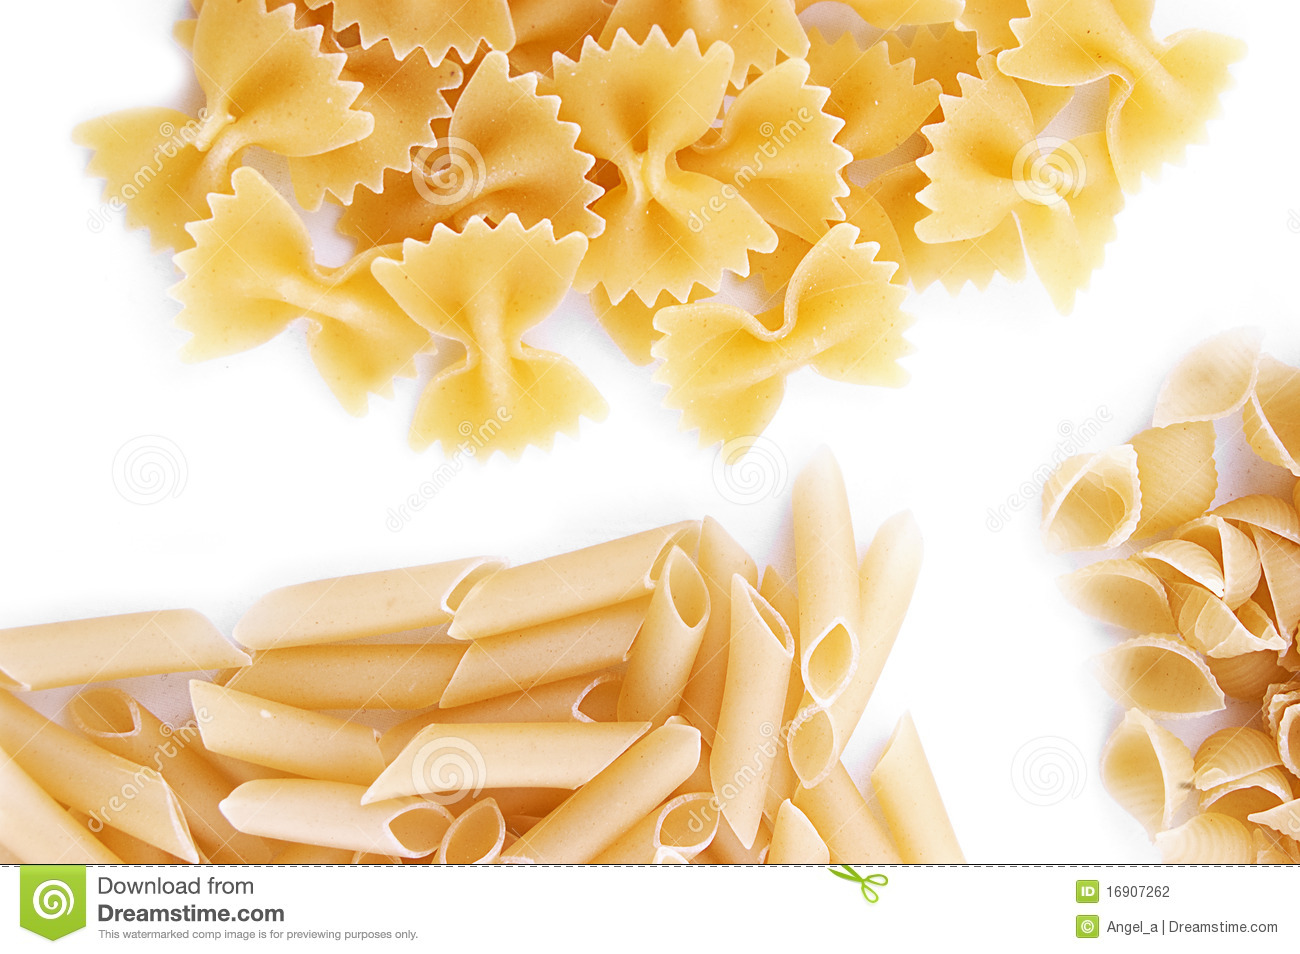 Some Kinds Of Pasta Stock Photography - Image: 16907262